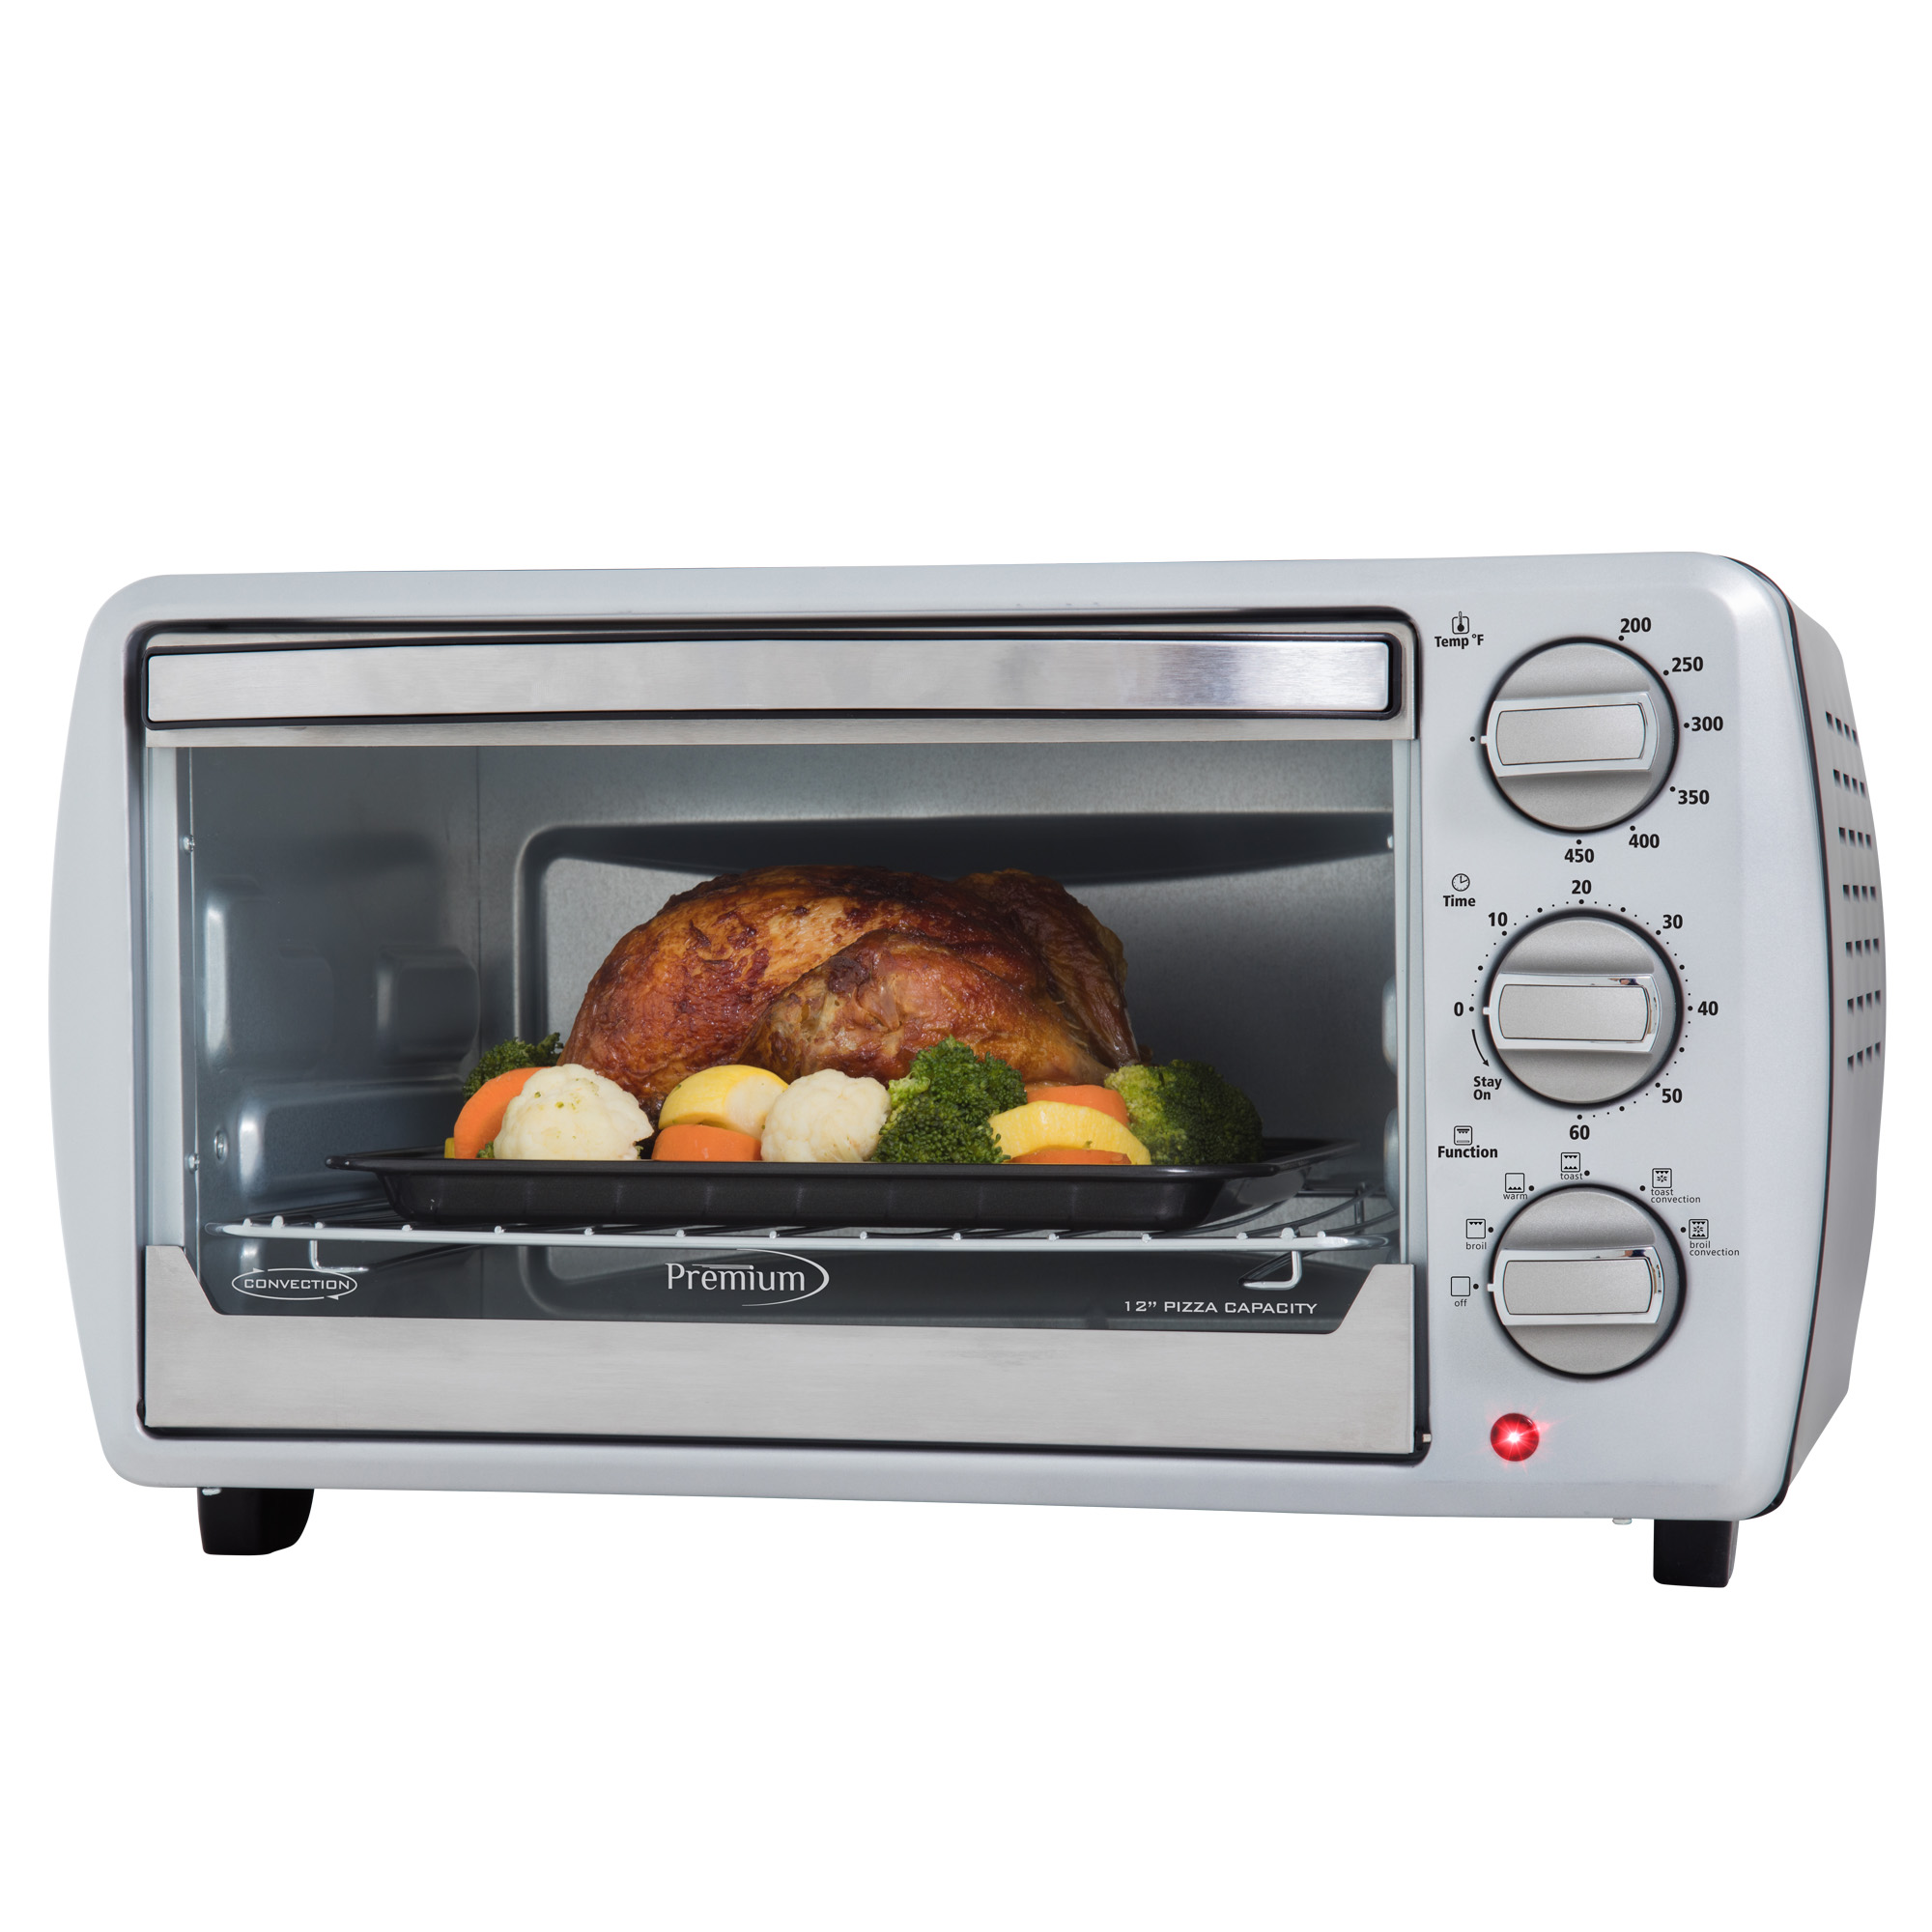 Premium Appliances 6 Slice Convection Toaster Oven